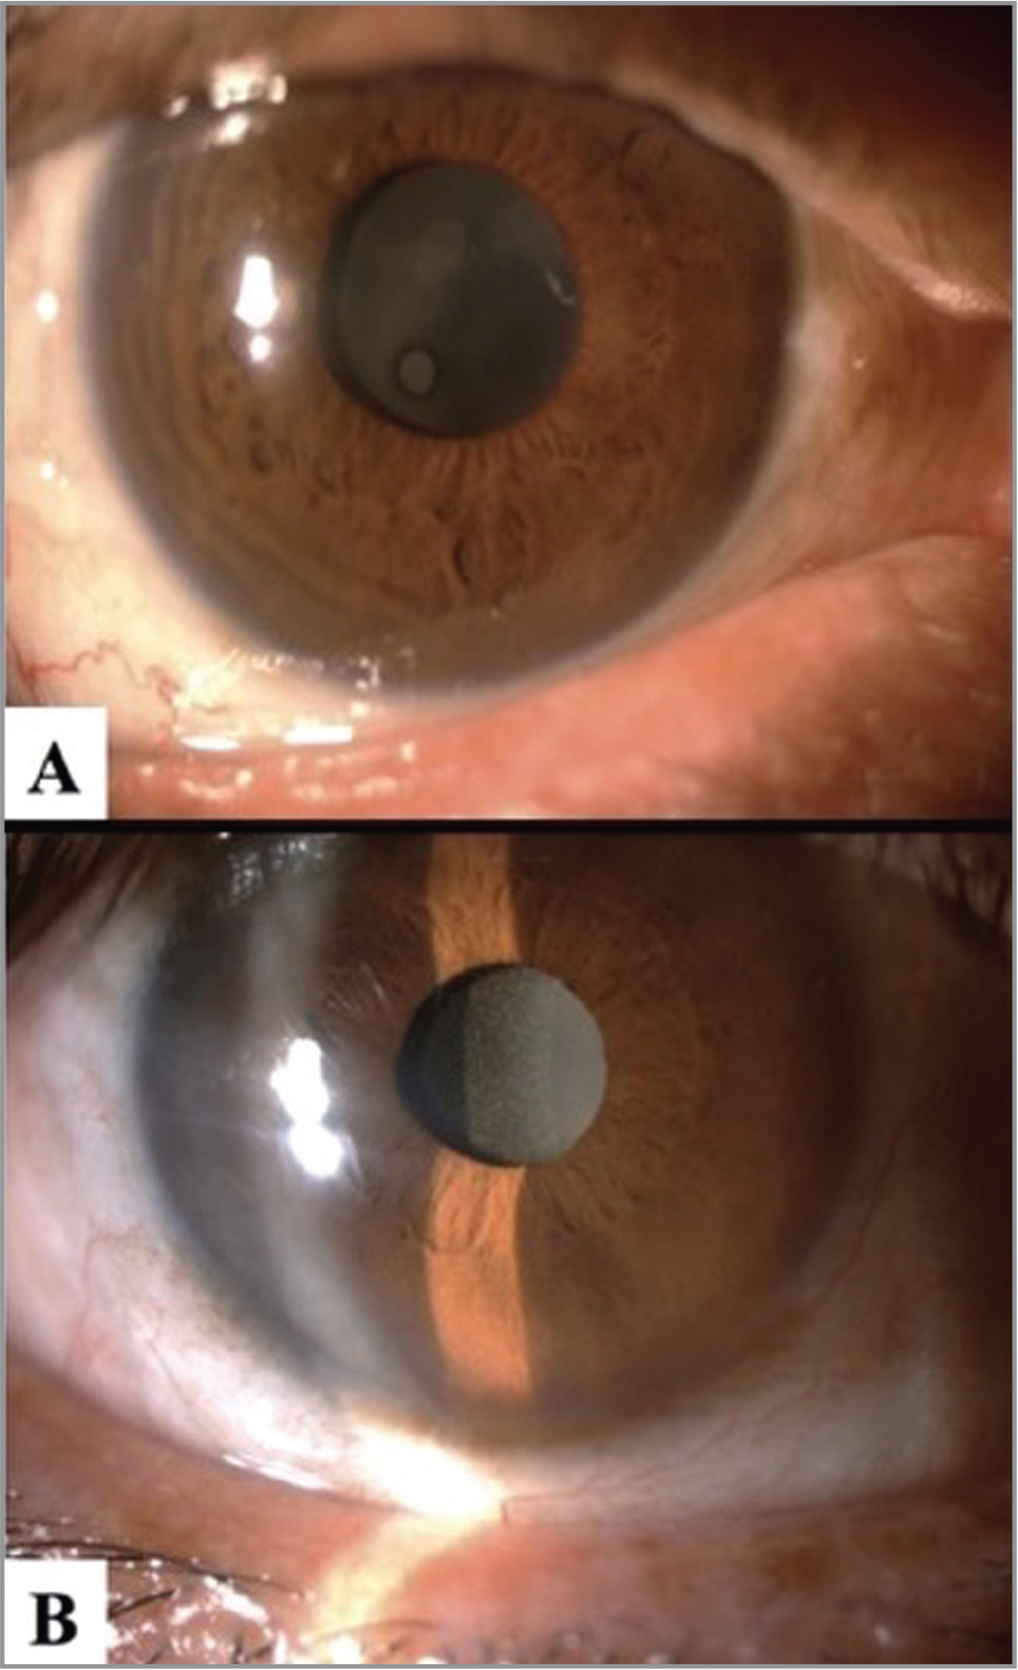 Opacified intraocular lens (IOL) was diagnosed on slit-lamp biomicroscopy. Bulky deposits could be easily seen (A); however, more fine and diffuse deposits located on the surface of the IOL optic required more elaborate examinations with slit-lamp (B).